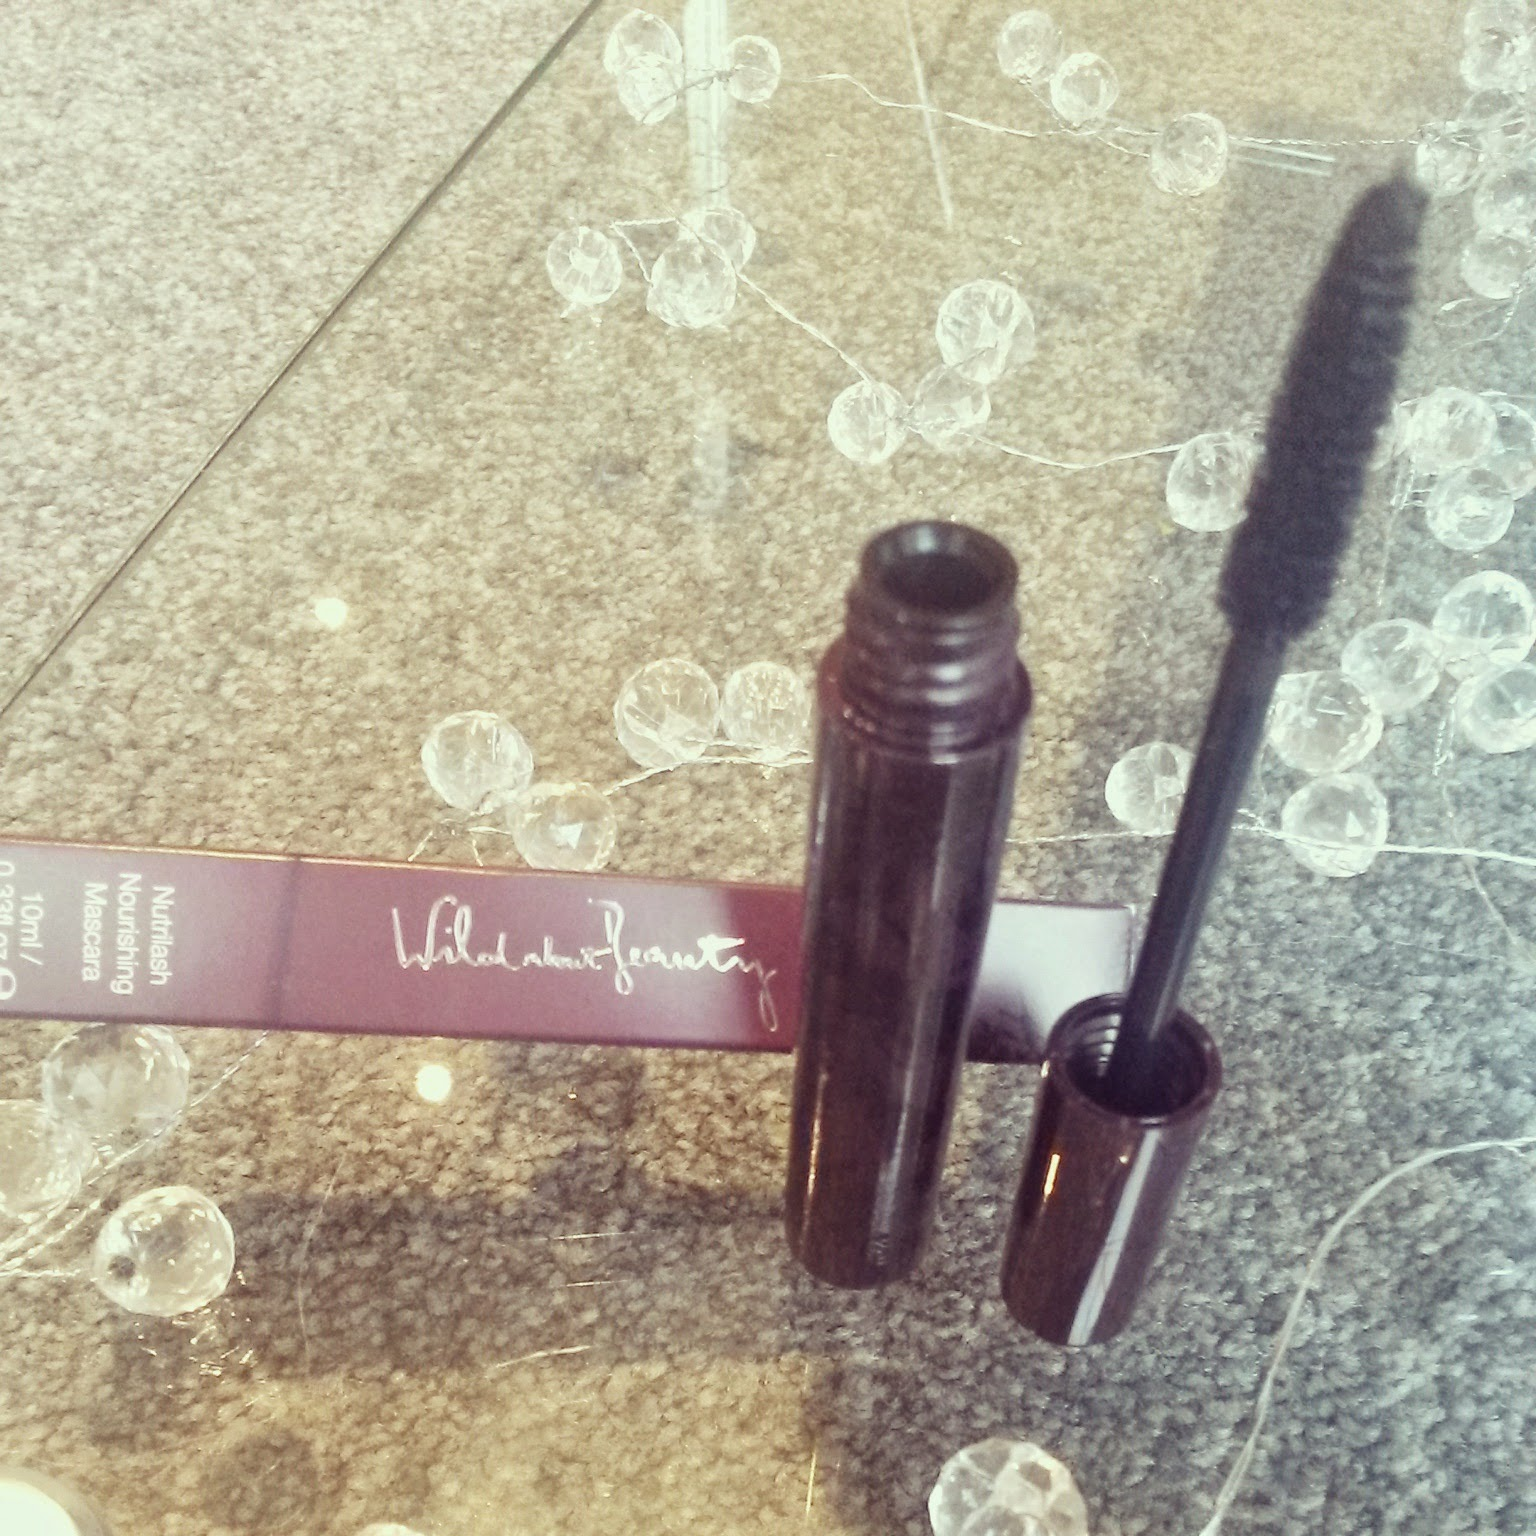 Wild about beauty nutrilash mascara